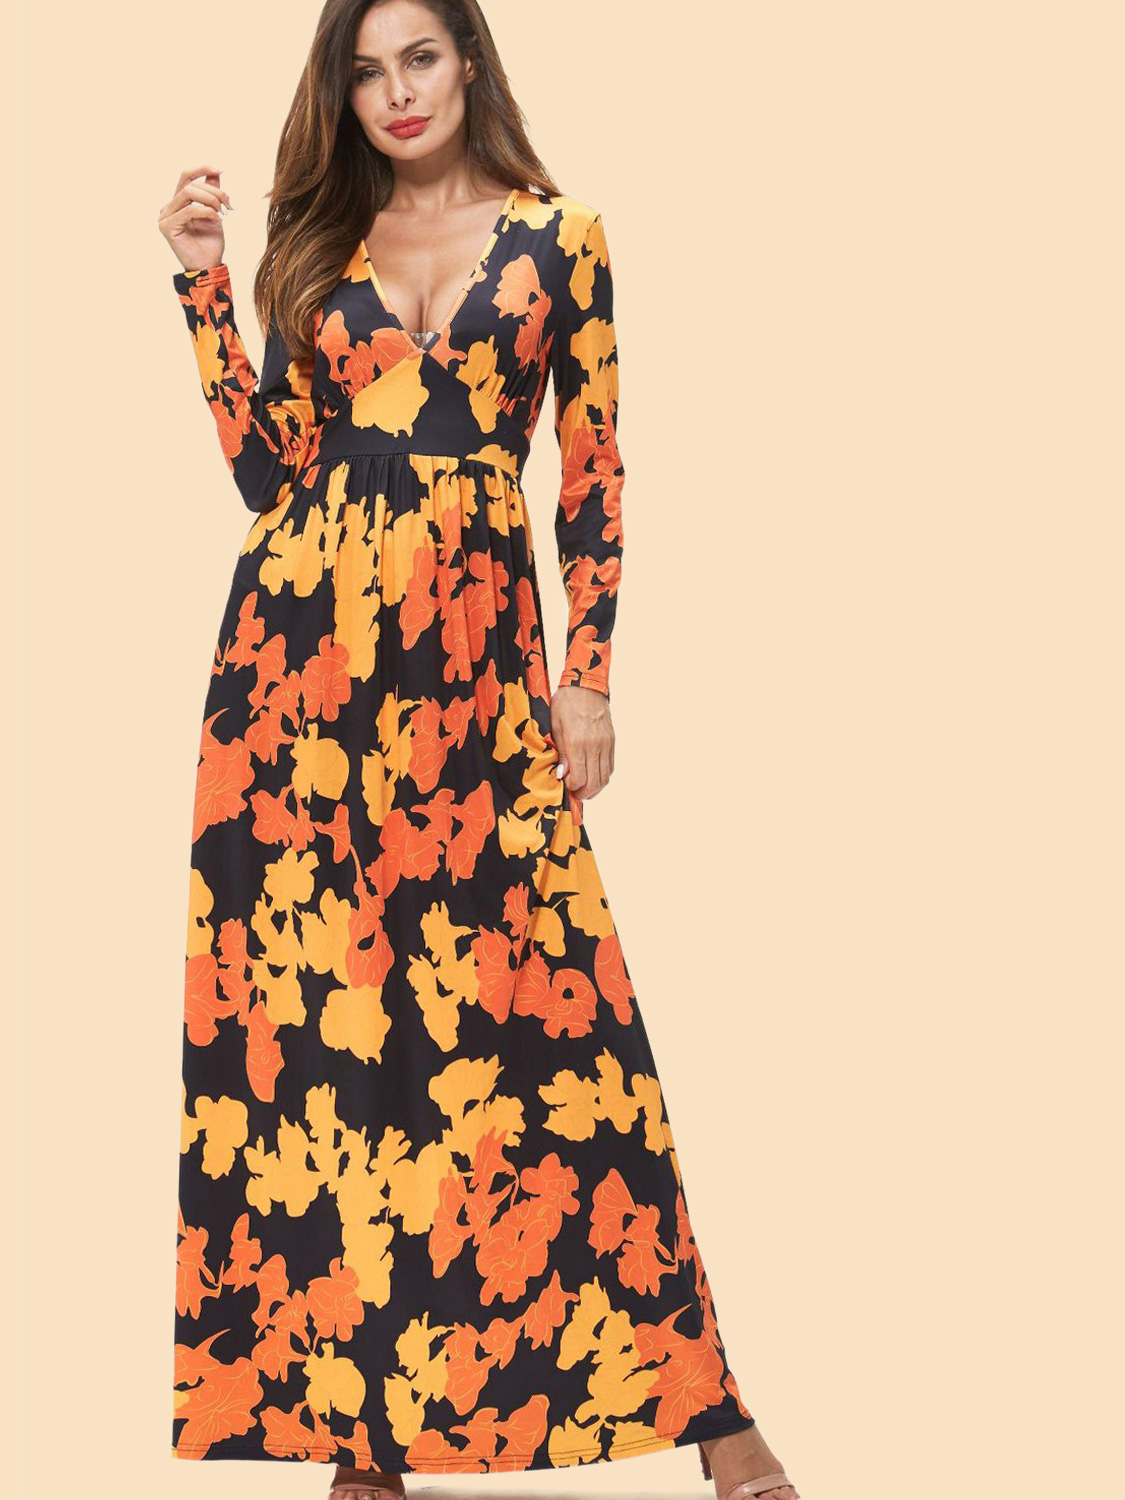 027a221a5f1 Paisley Floral Print Plunge Neck Long Sleeve Maxi Dress. Loading zoom